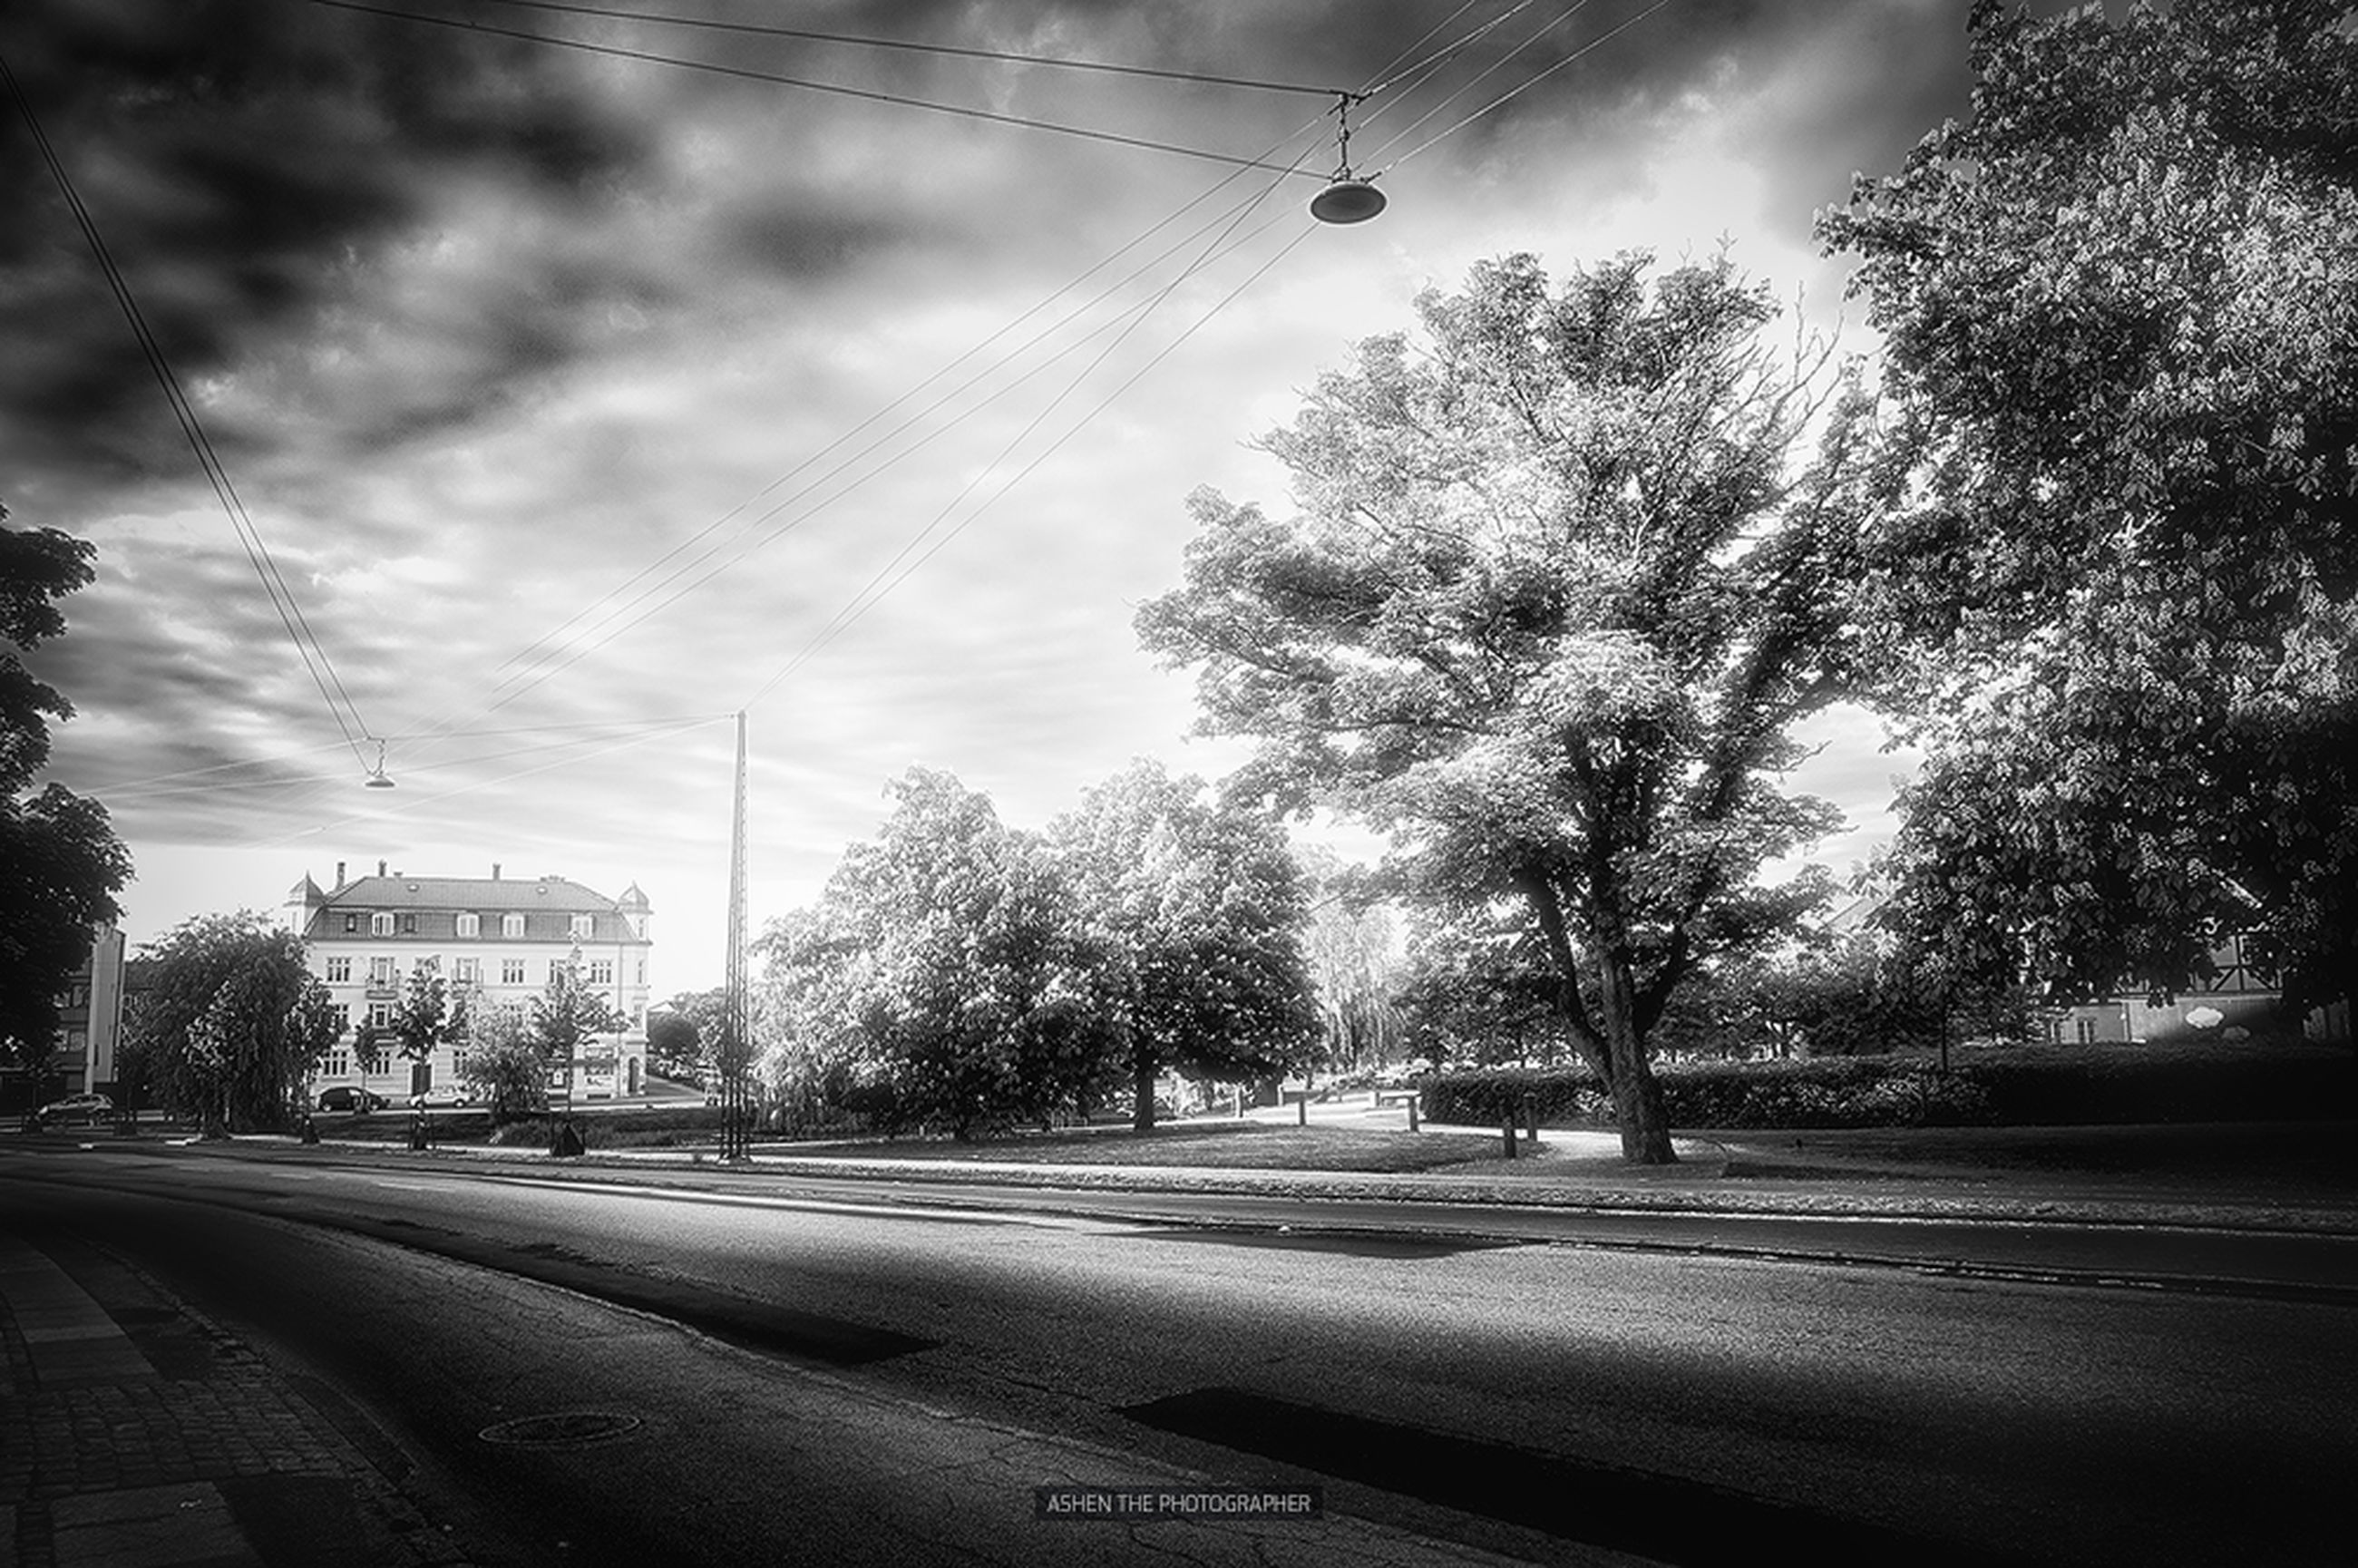 transportation, road, tree, the way forward, street, power line, road marking, sky, electricity pylon, car, diminishing perspective, land vehicle, street light, mode of transport, vanishing point, asphalt, electricity, country road, outdoors, empty road